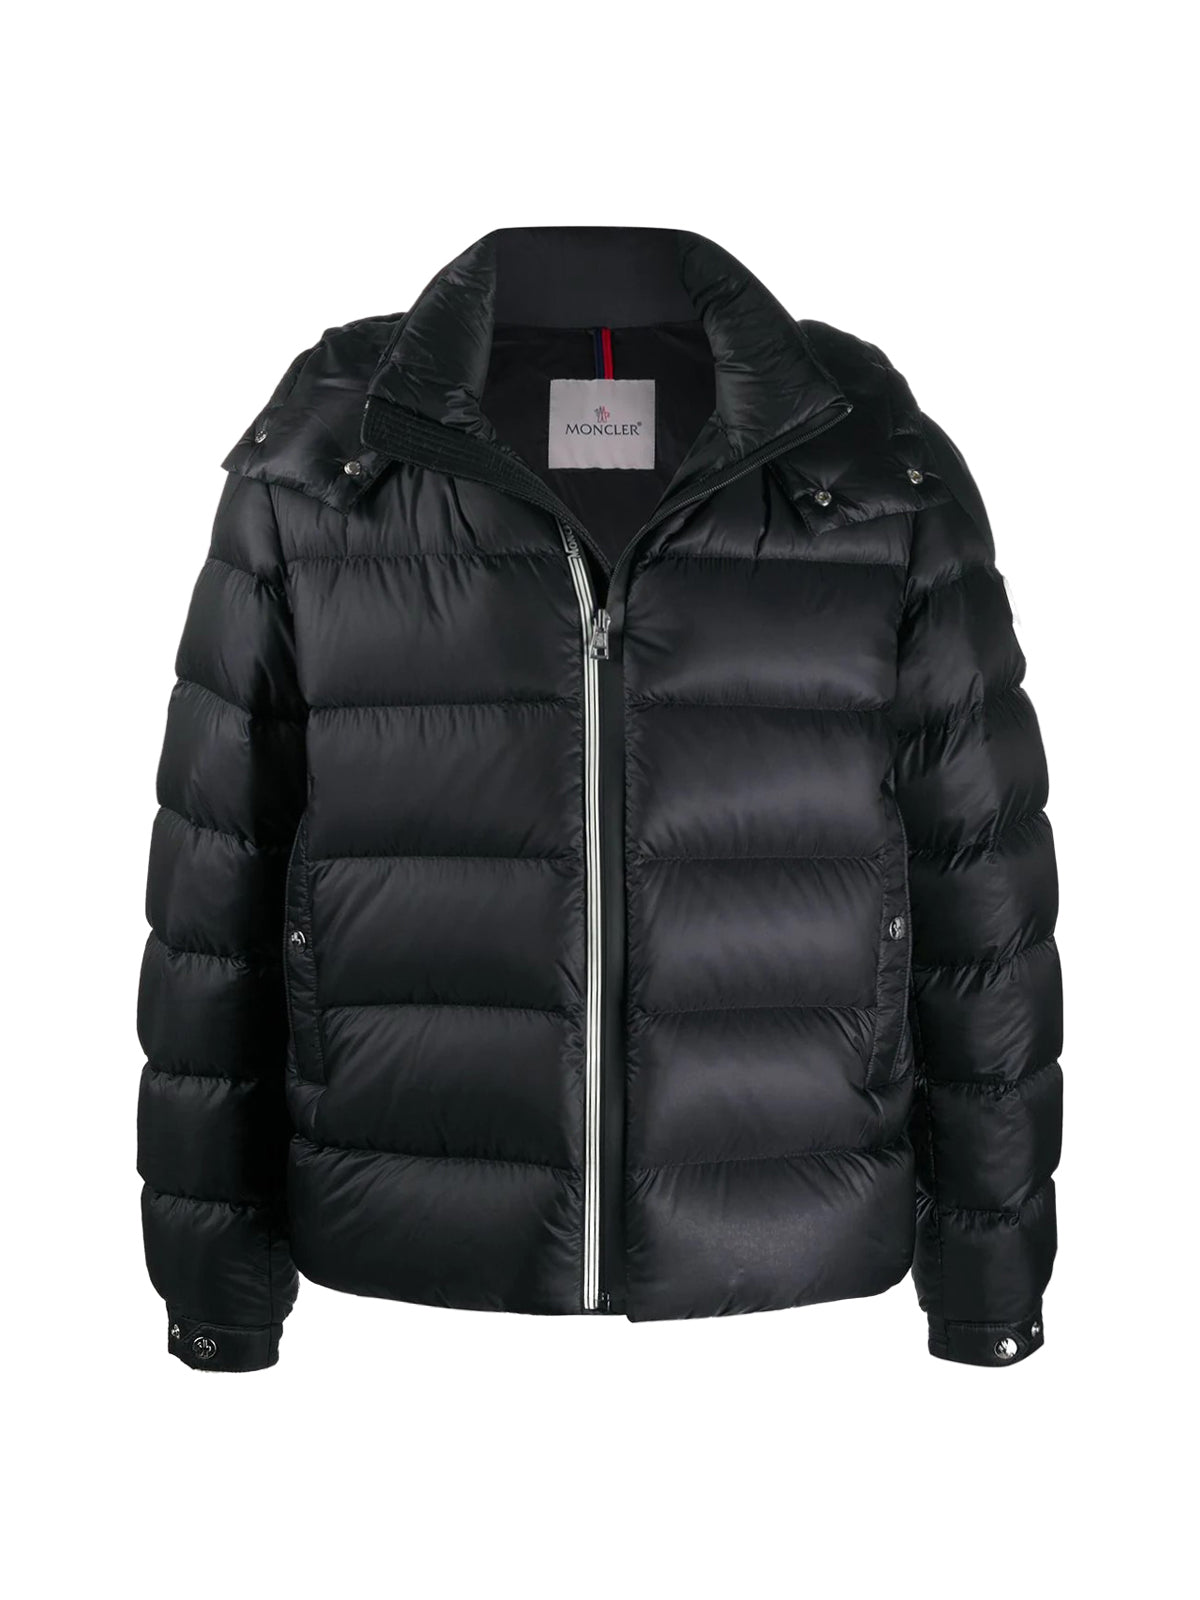 Arves puffer jacket